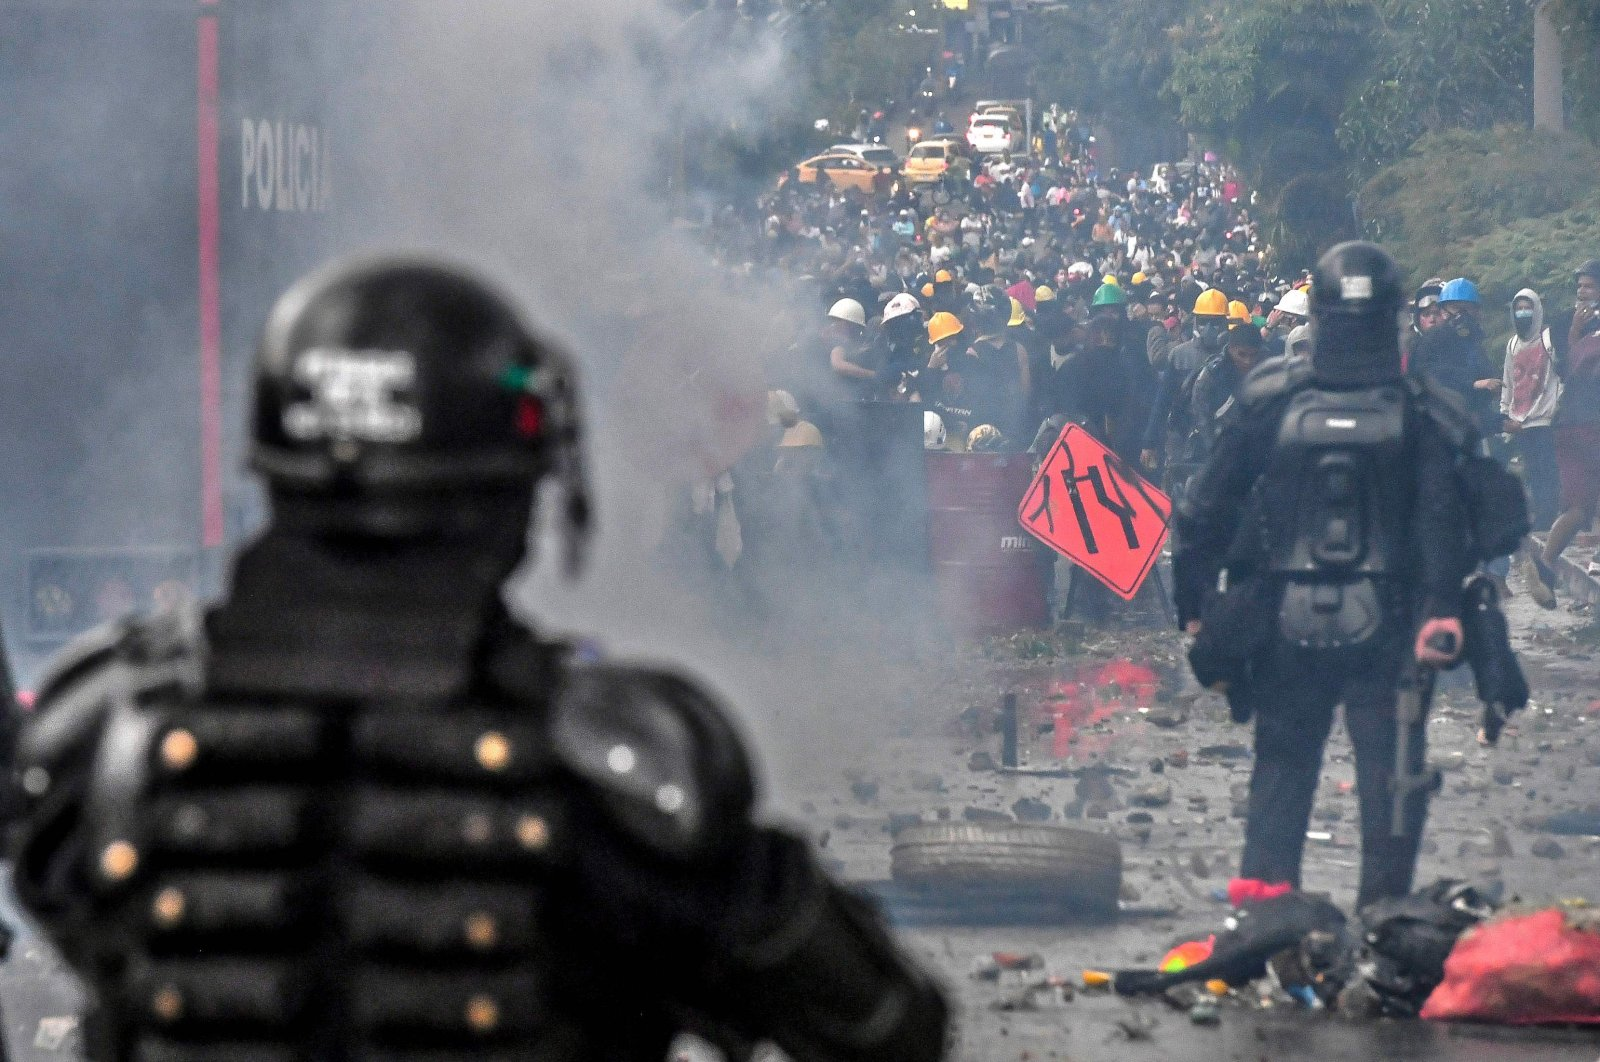 Riot police clash with demonstrators in a new protest against the government of Colombian President Ivan Duque in Medellin, Colombia, on June 2, 2021. (AFP Photo)